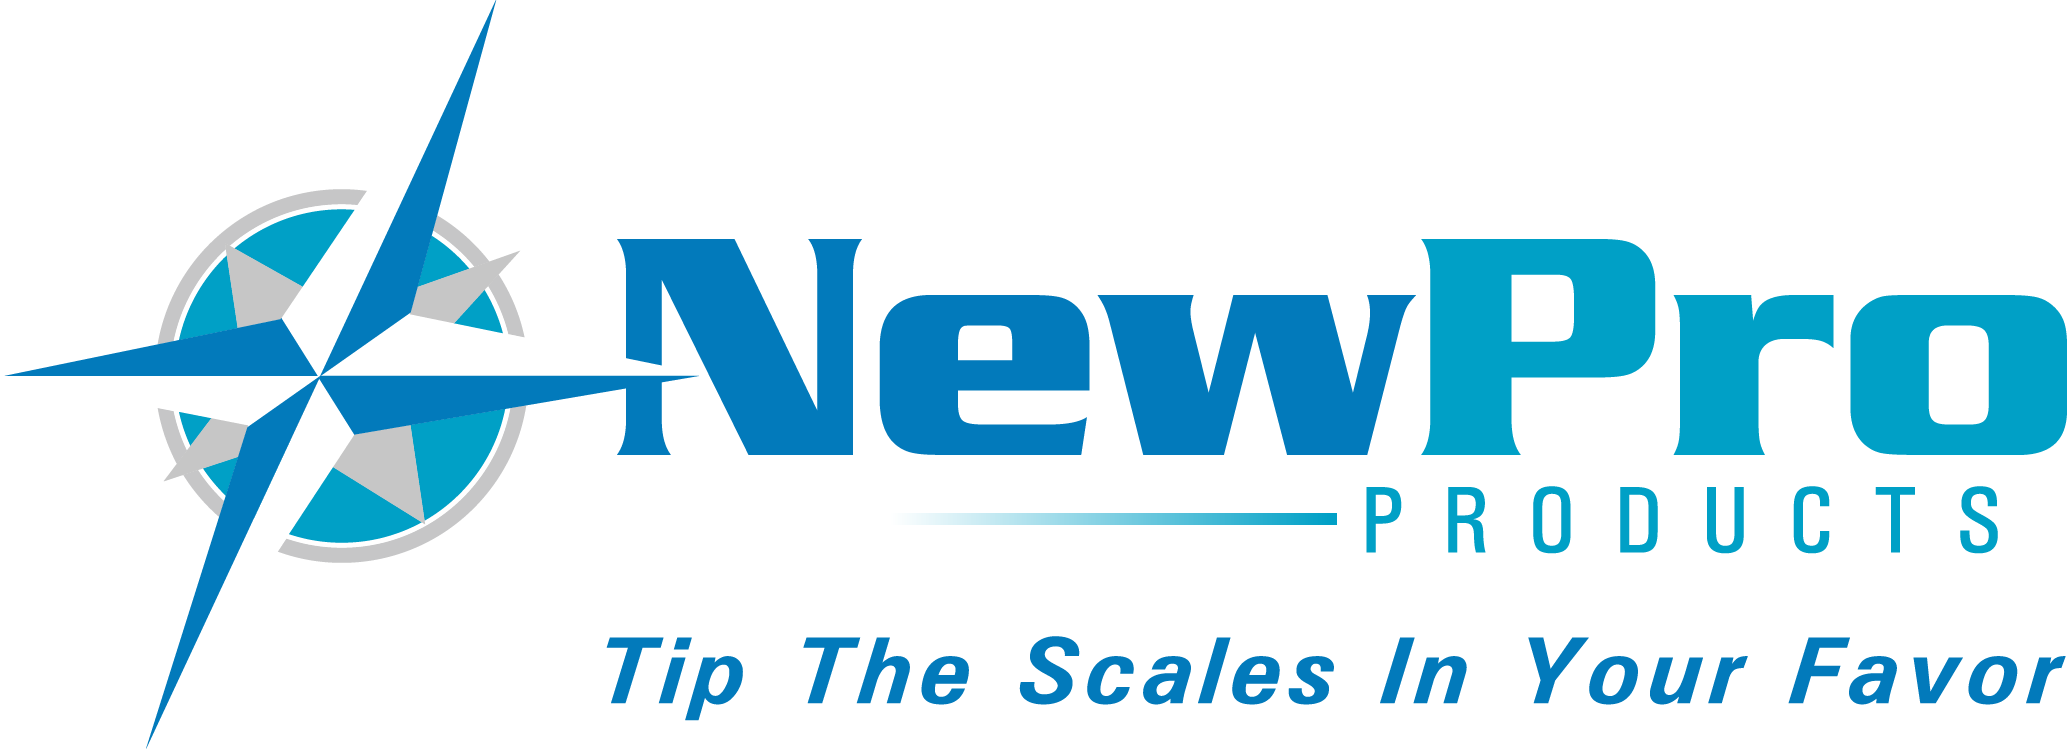 NewProProducts